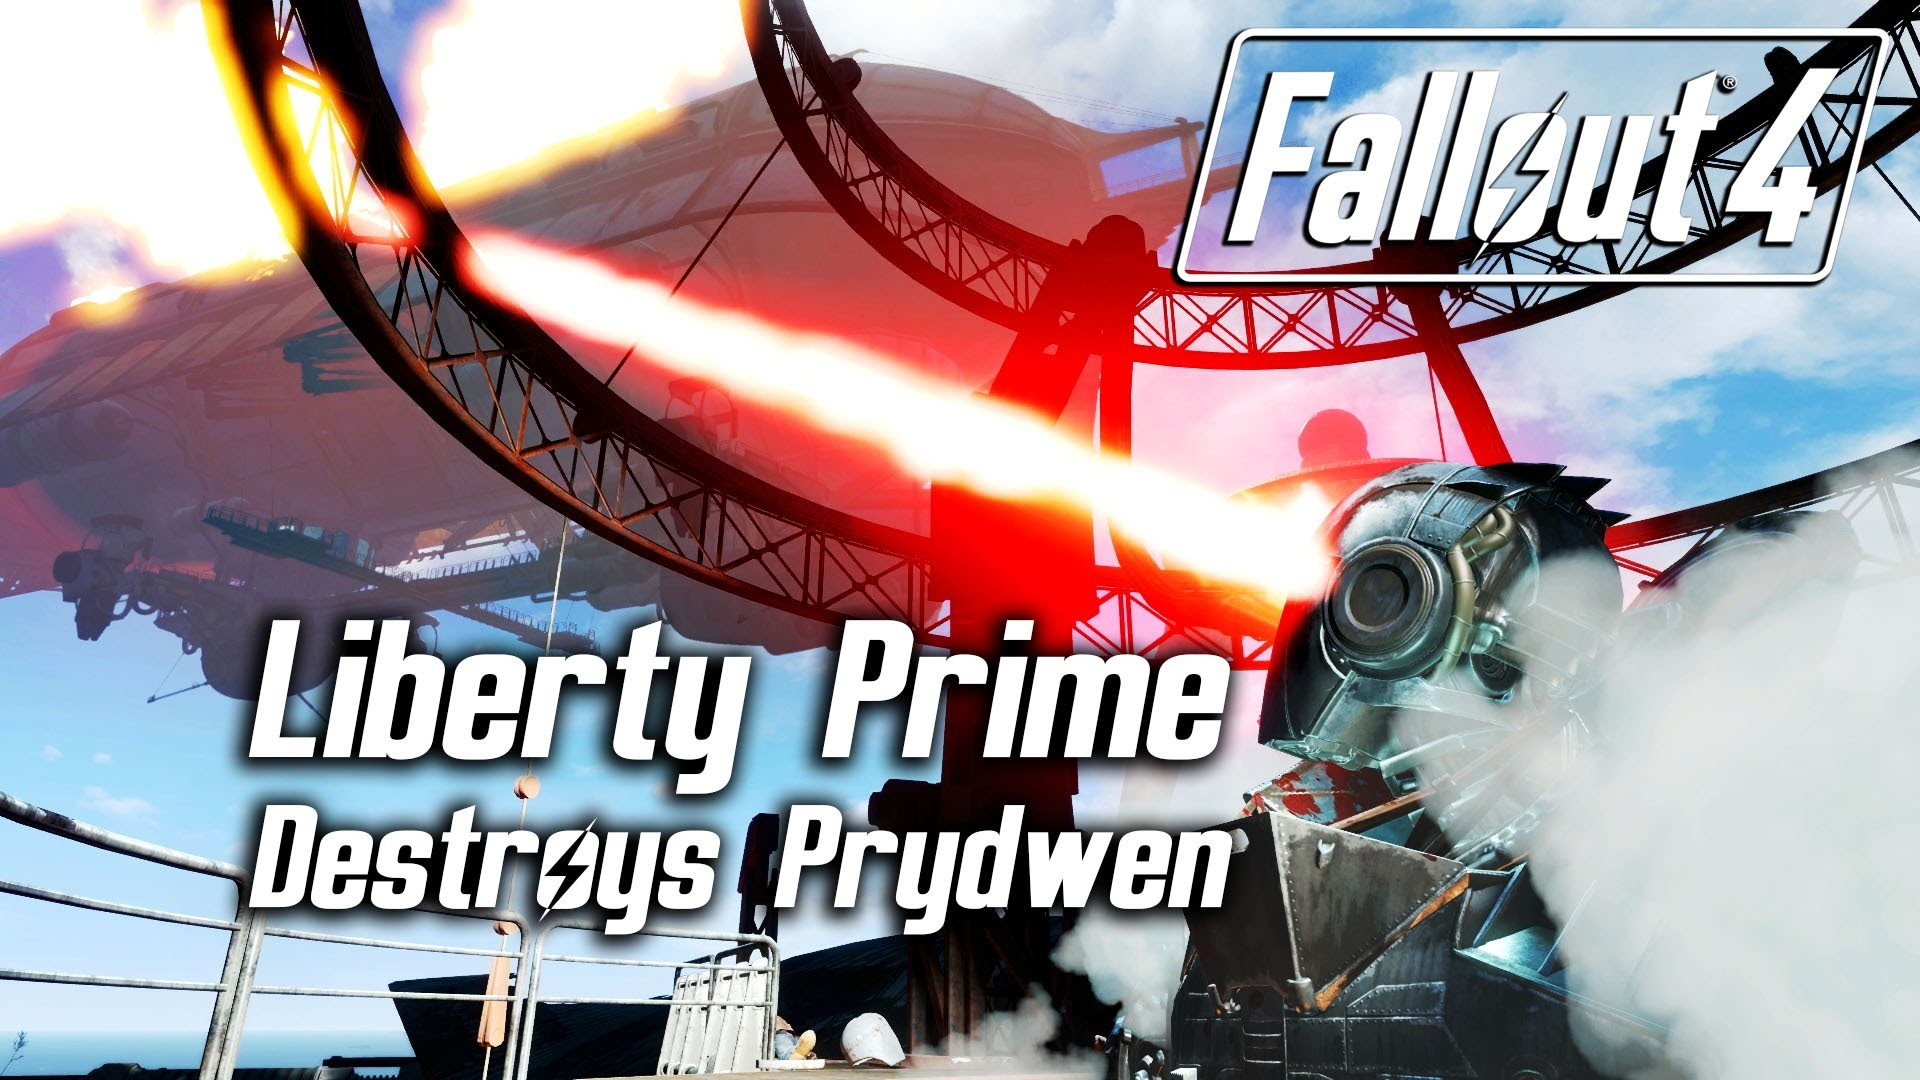 Res: 1920x1080, Fallout 4 - Liberty Prime destroys The Prydwen via her dual eye lasers -  YouTube